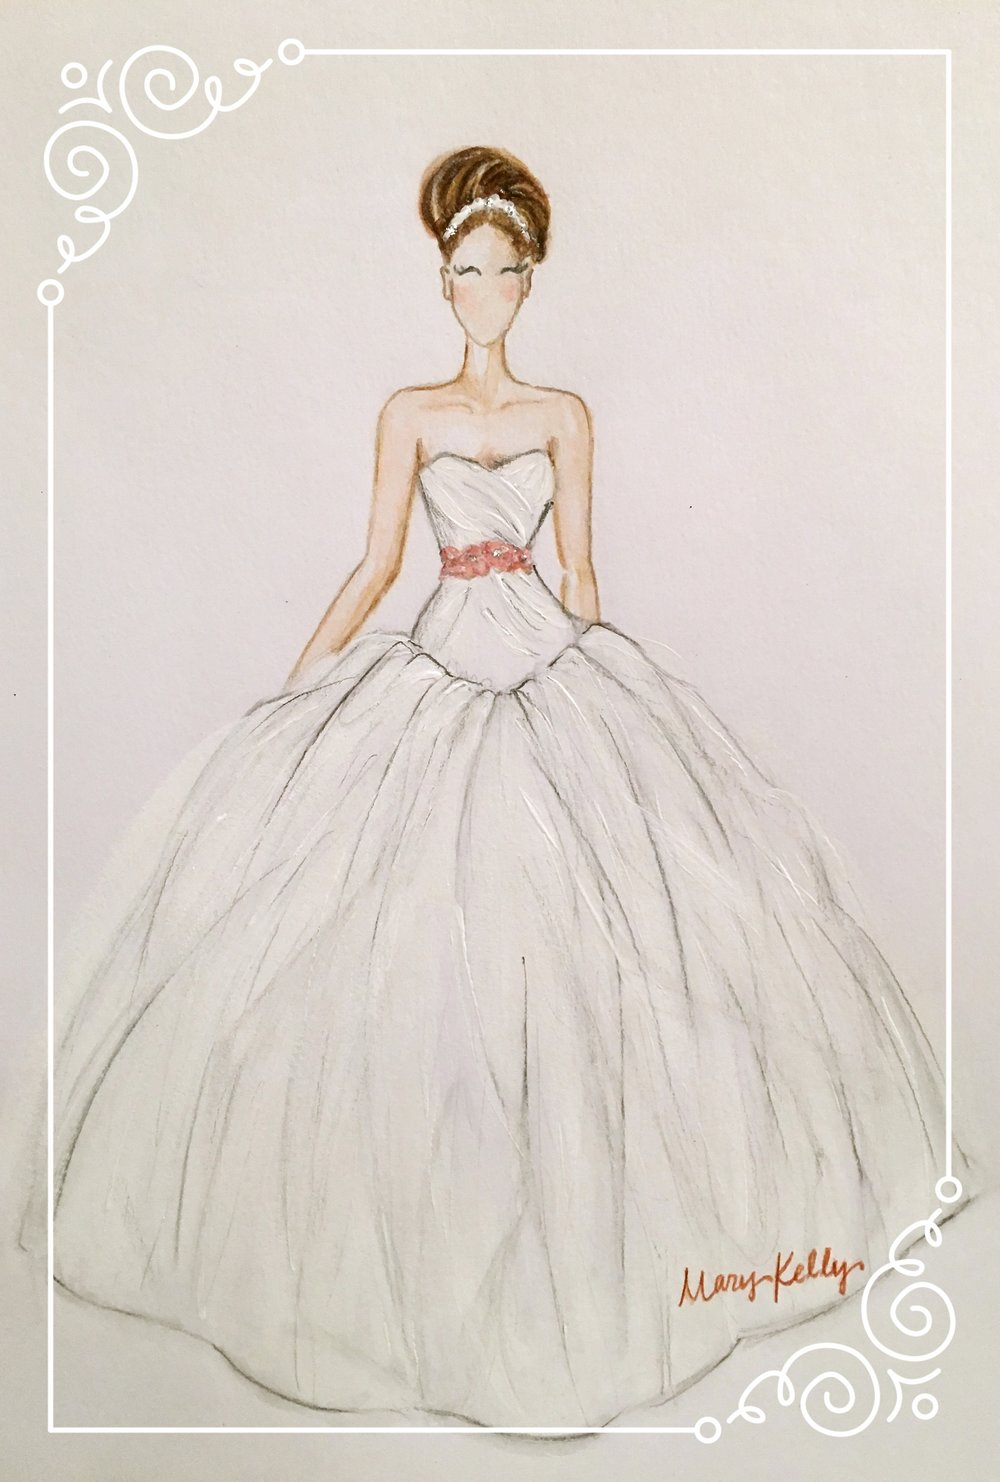 vera wang gown, mary kelly designs ©2018